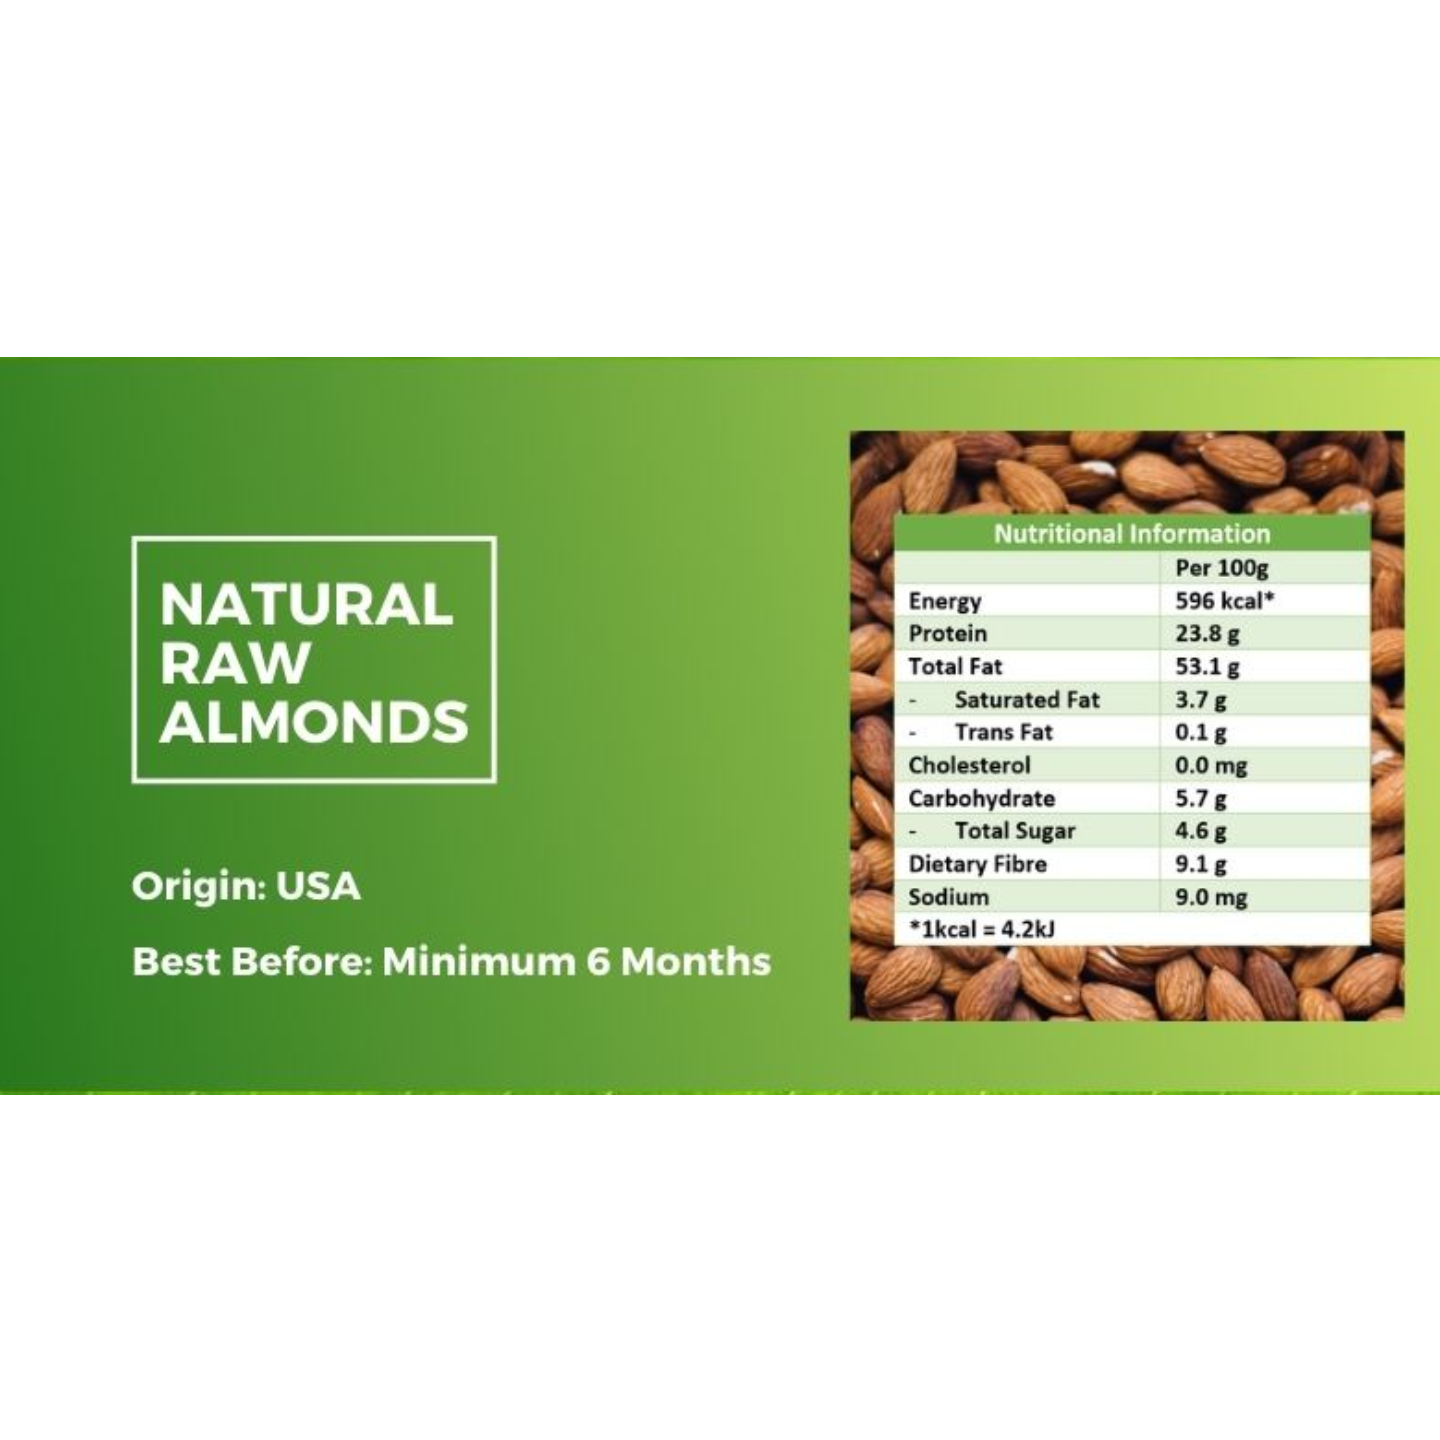 Natural Raw Almond [500g] - Value Pack